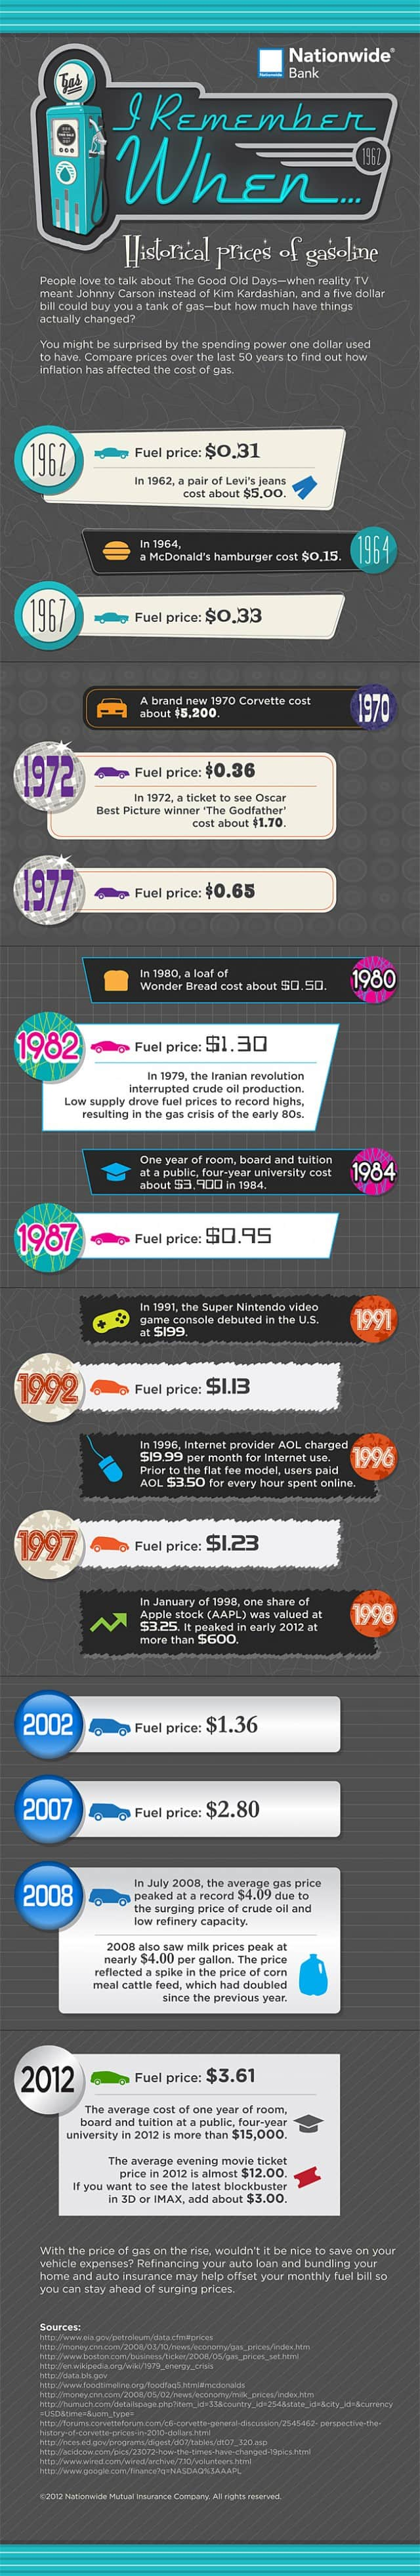 Rising Gas Prices [infographic]